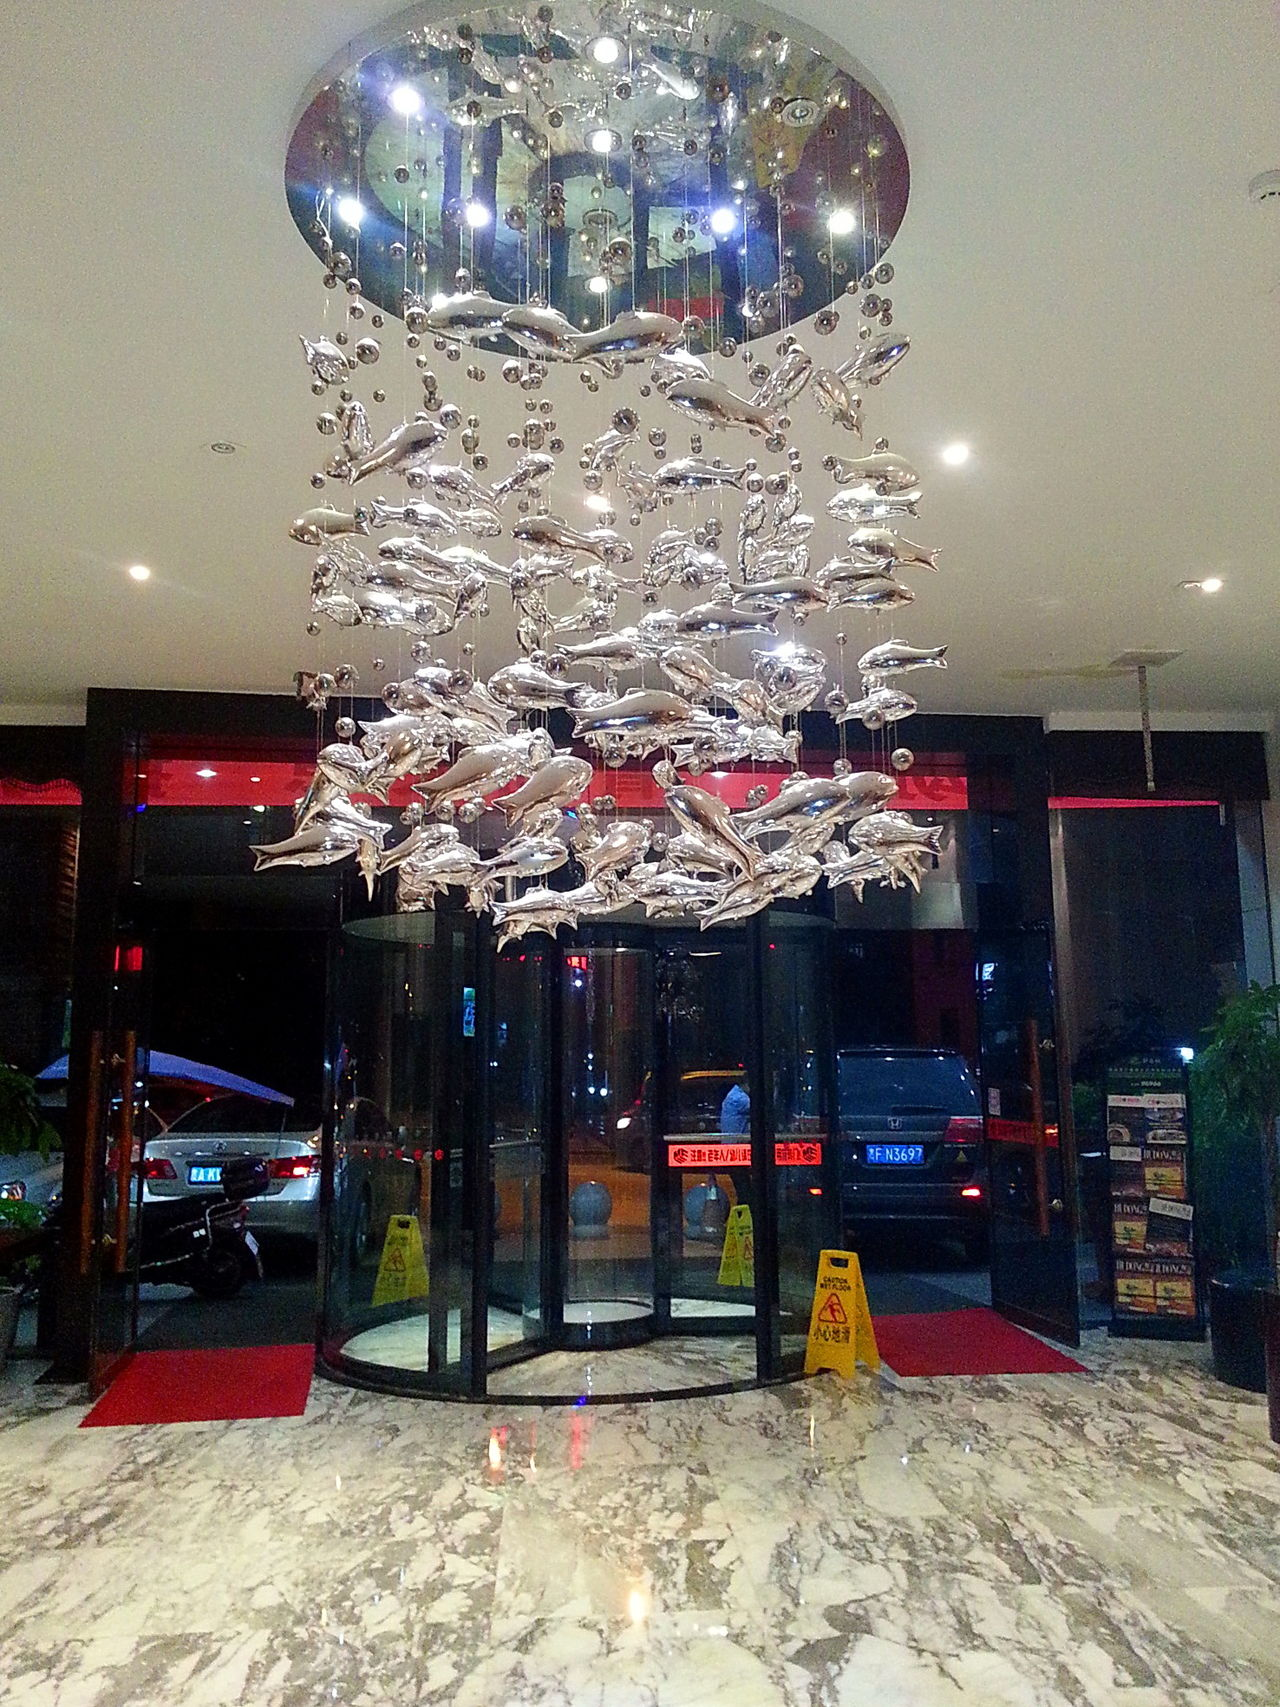 Deco Lightings Decoration Hanging Lights Hotel Hotel Lobby Illuminated Indoors  Lighting Deco Lighting Equipment Night Dolphins